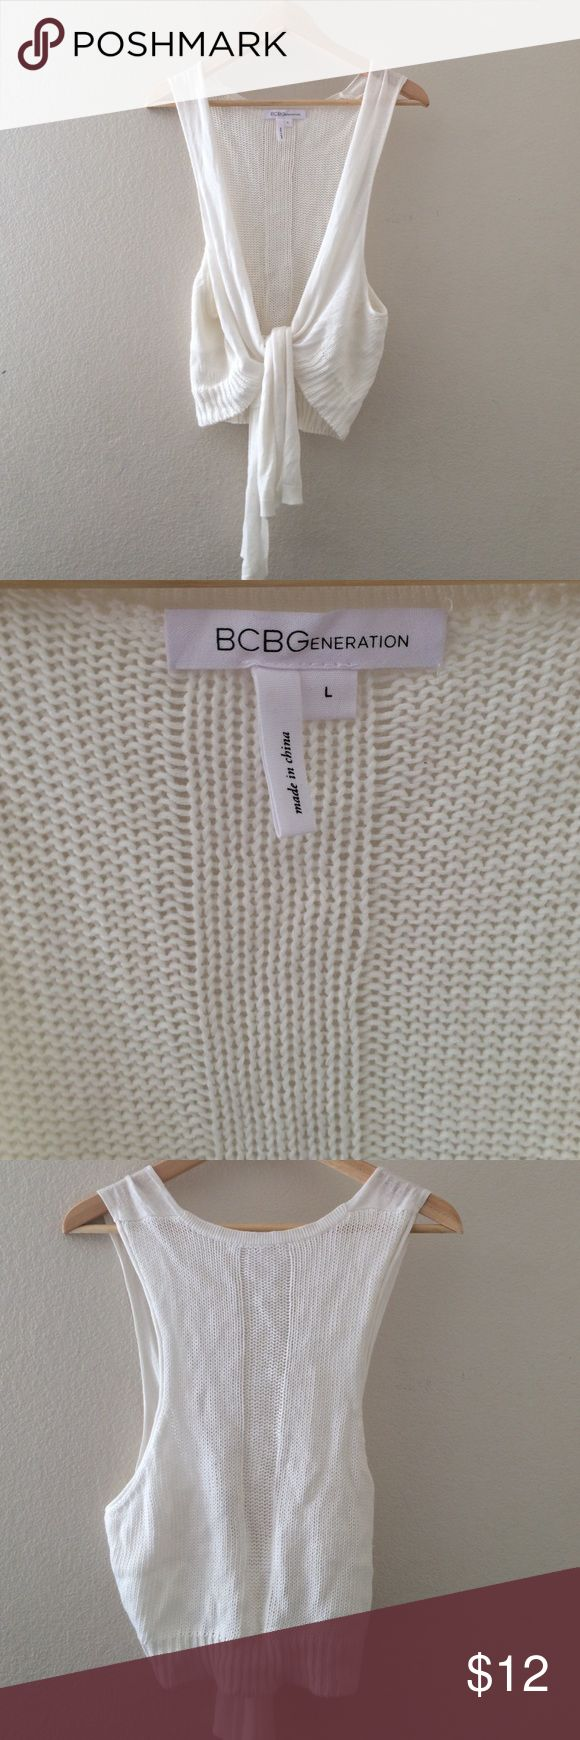 White BCBGeneration sleeveless sweater tie front. White BCBGeneration sleeveless tie front sweater.  Excellent condition.  Like new.  Super cute. BCBGeneration Tops